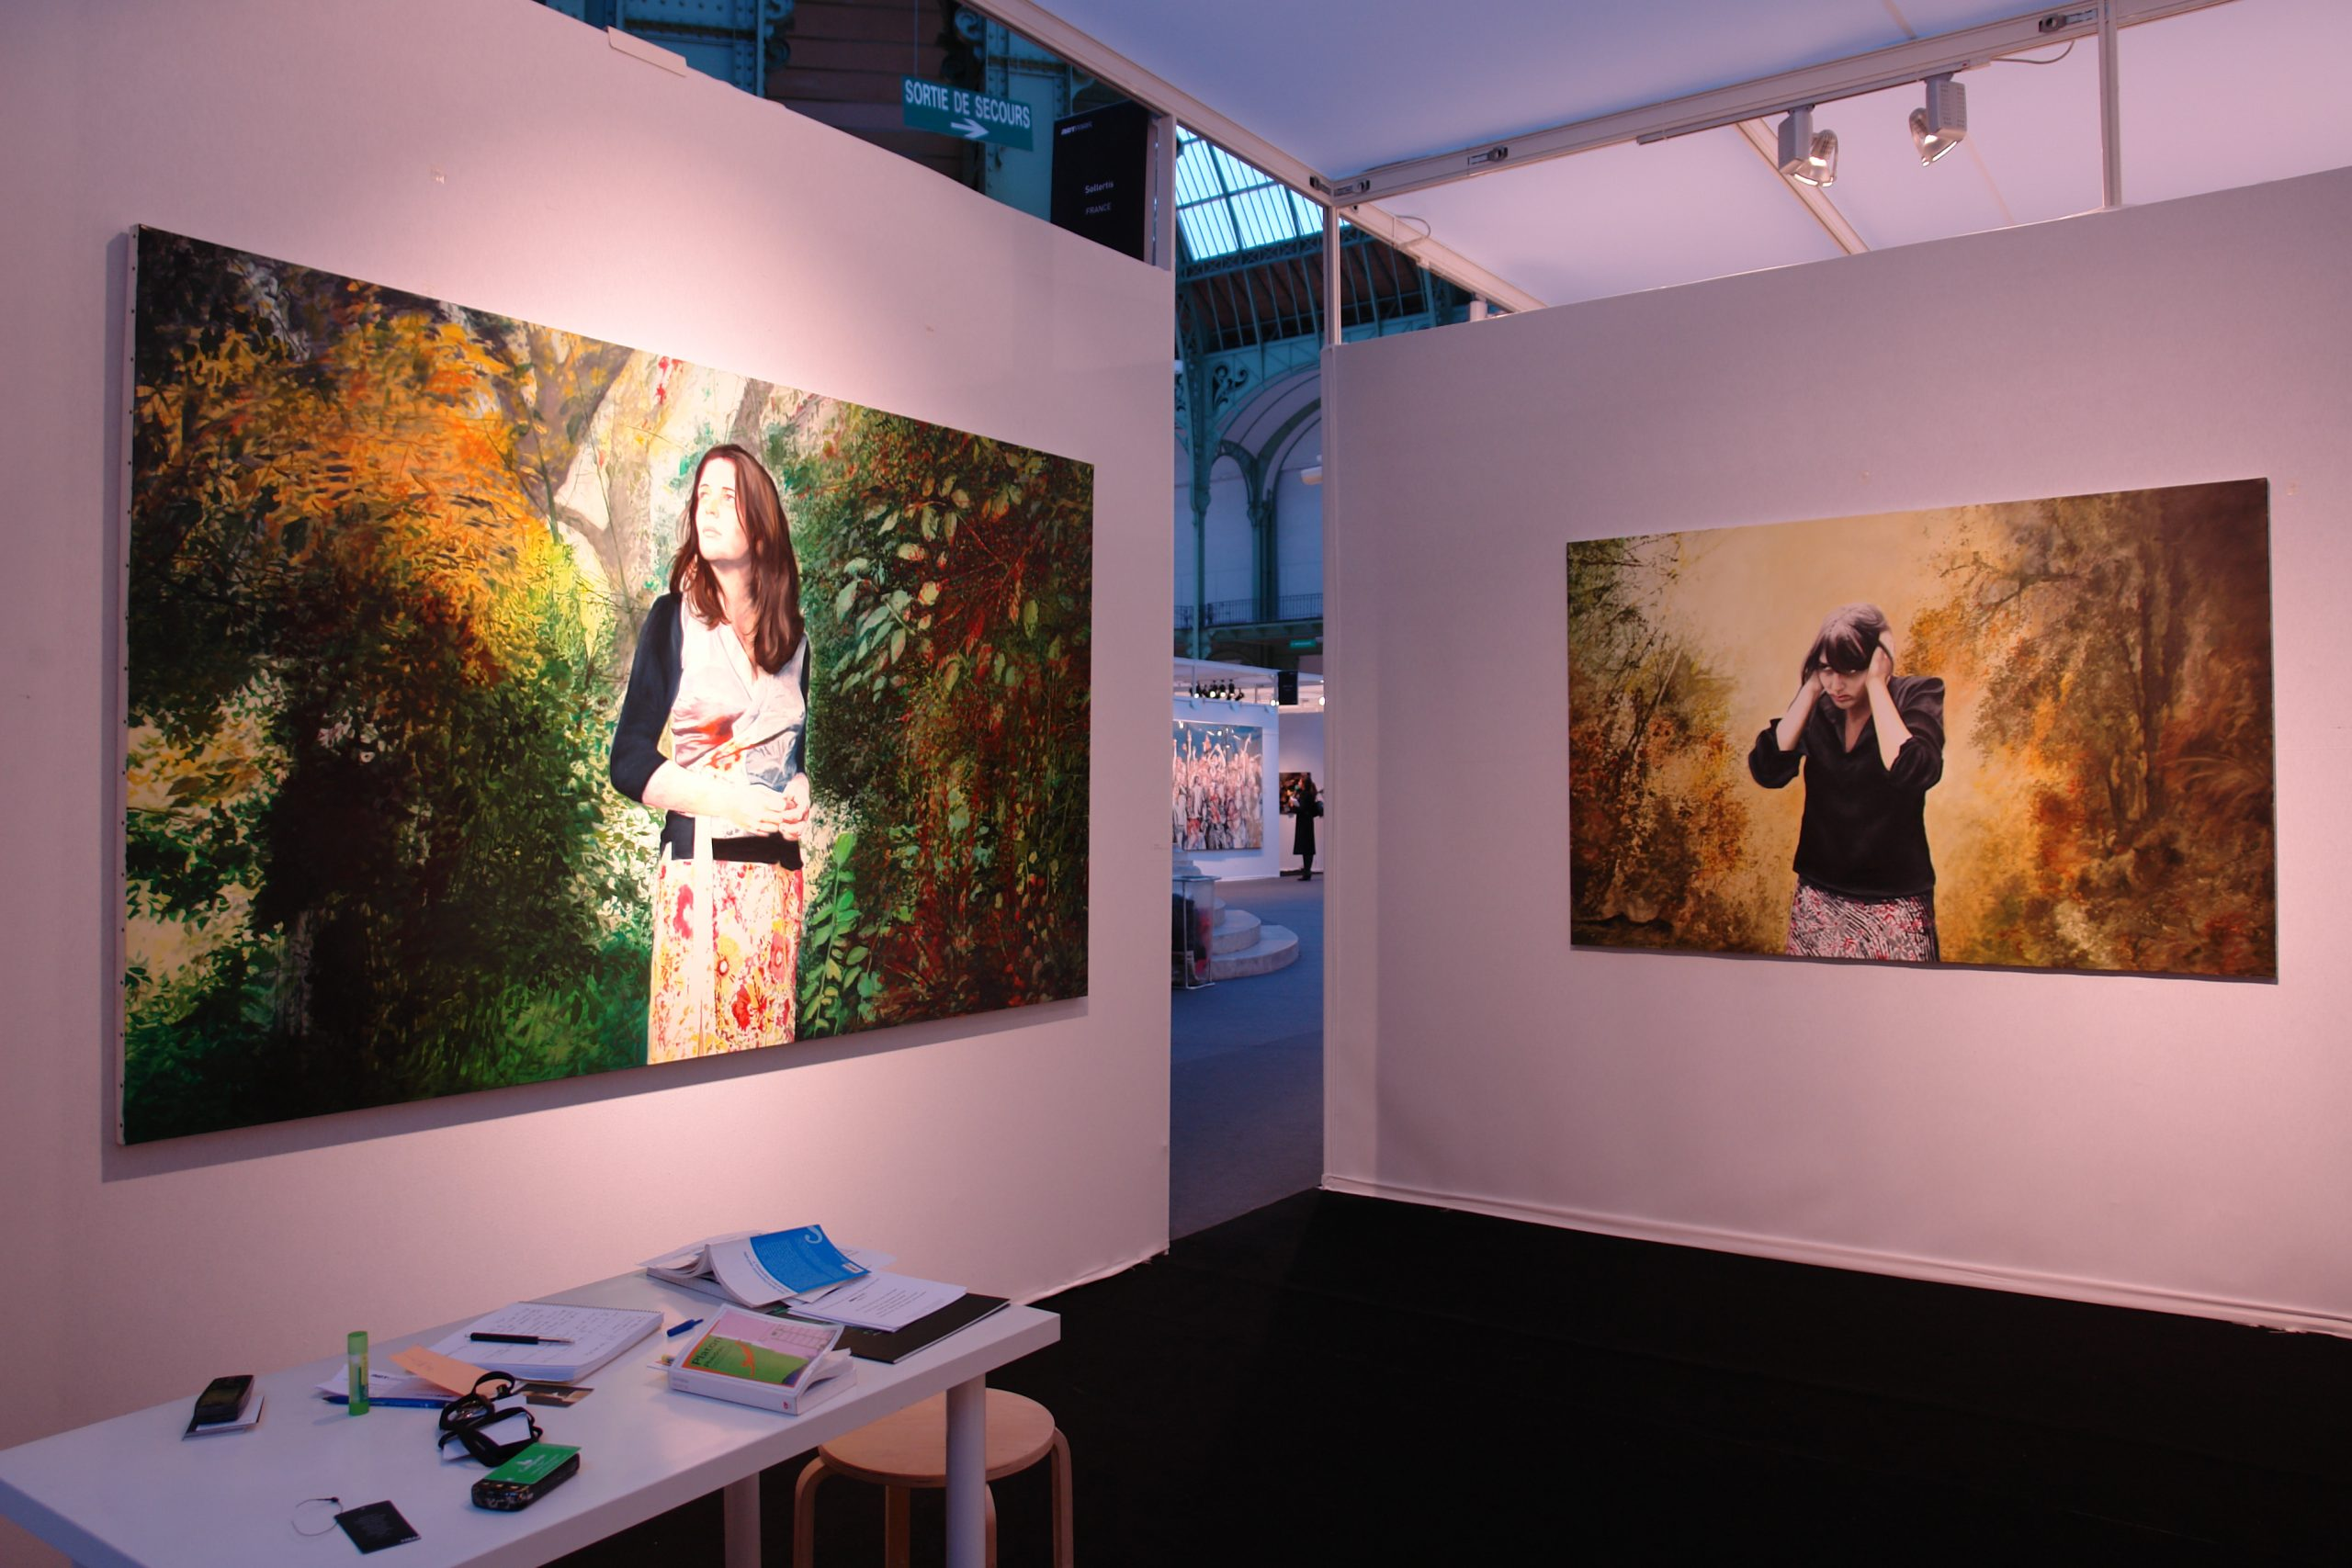 Stand à Art Paris - Alain Josseau et Le Jardin des supplices